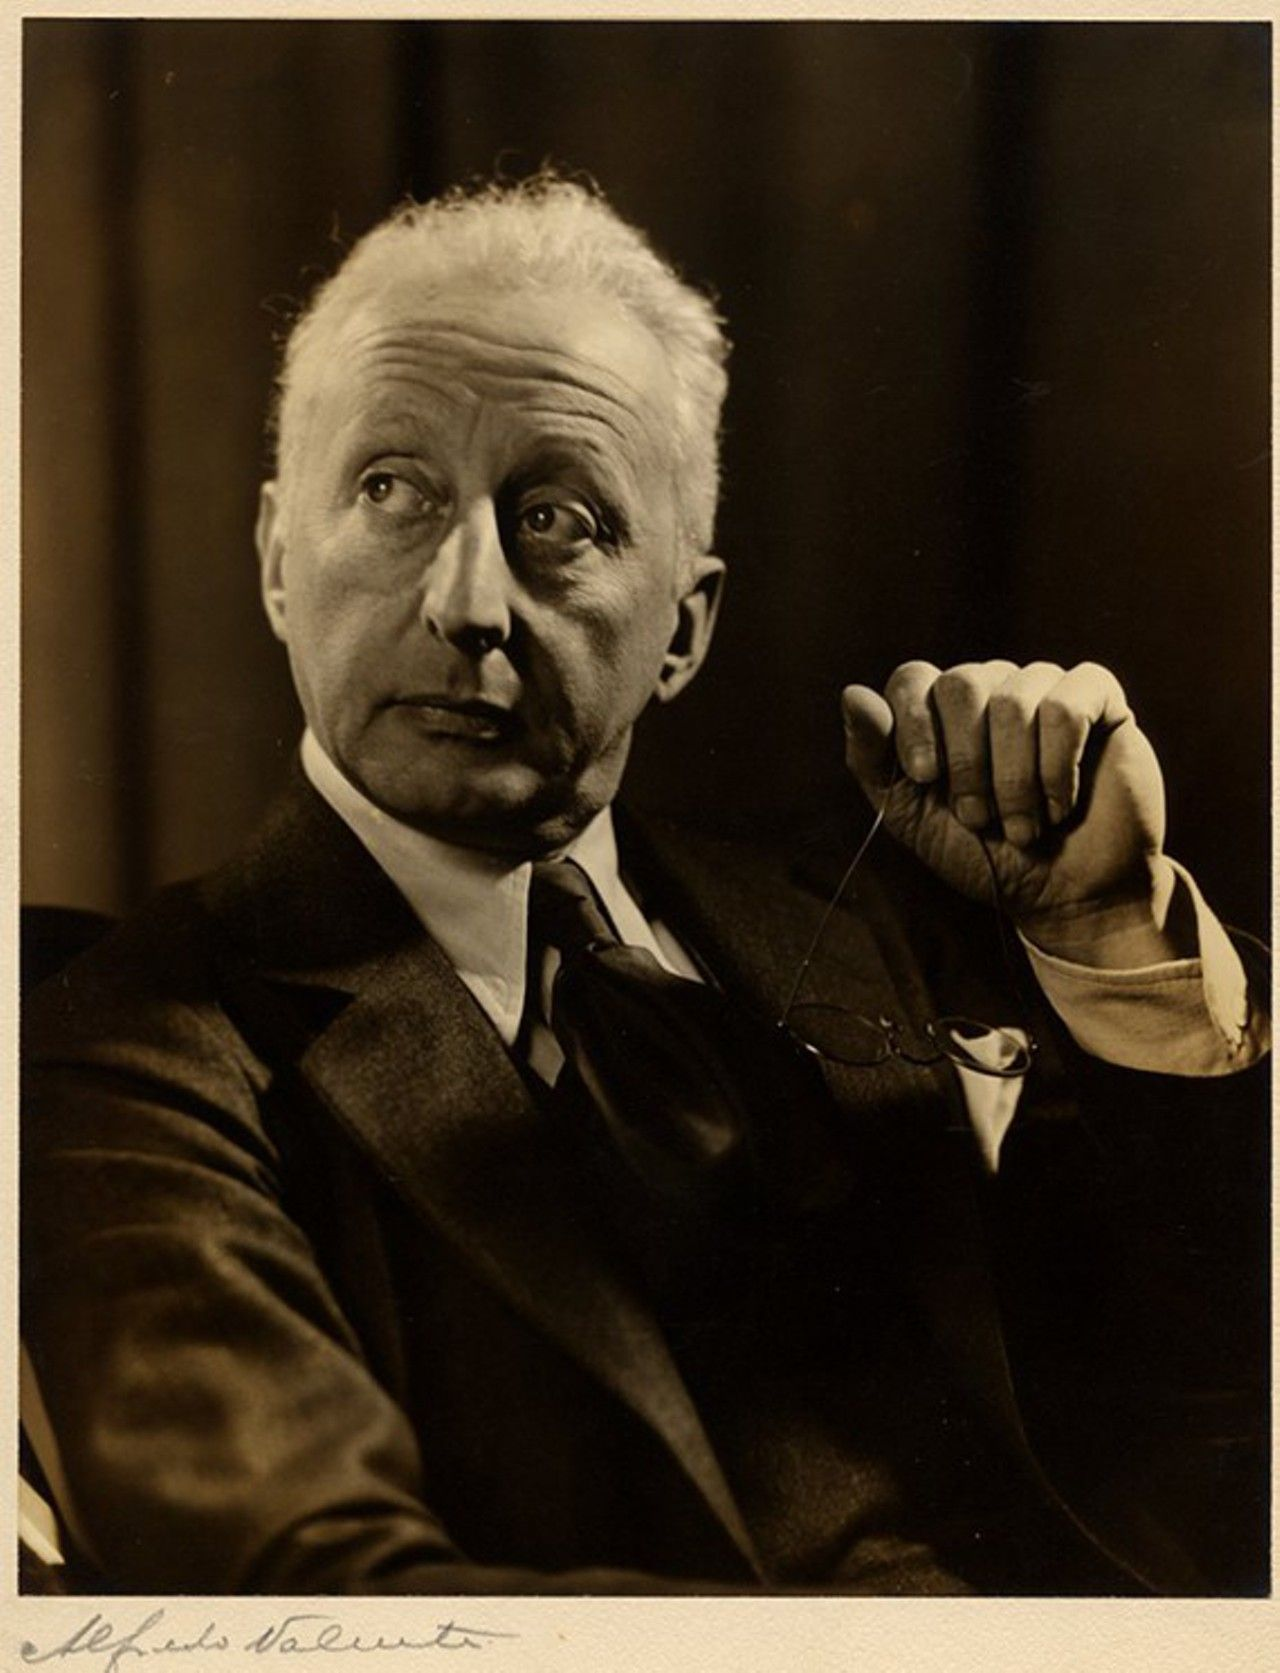 Jerome Kern 1885 1945 New York City Ny Was One Of The Most Important American Theatre Composers Of The Early 20th Century He W Modern Composers Music